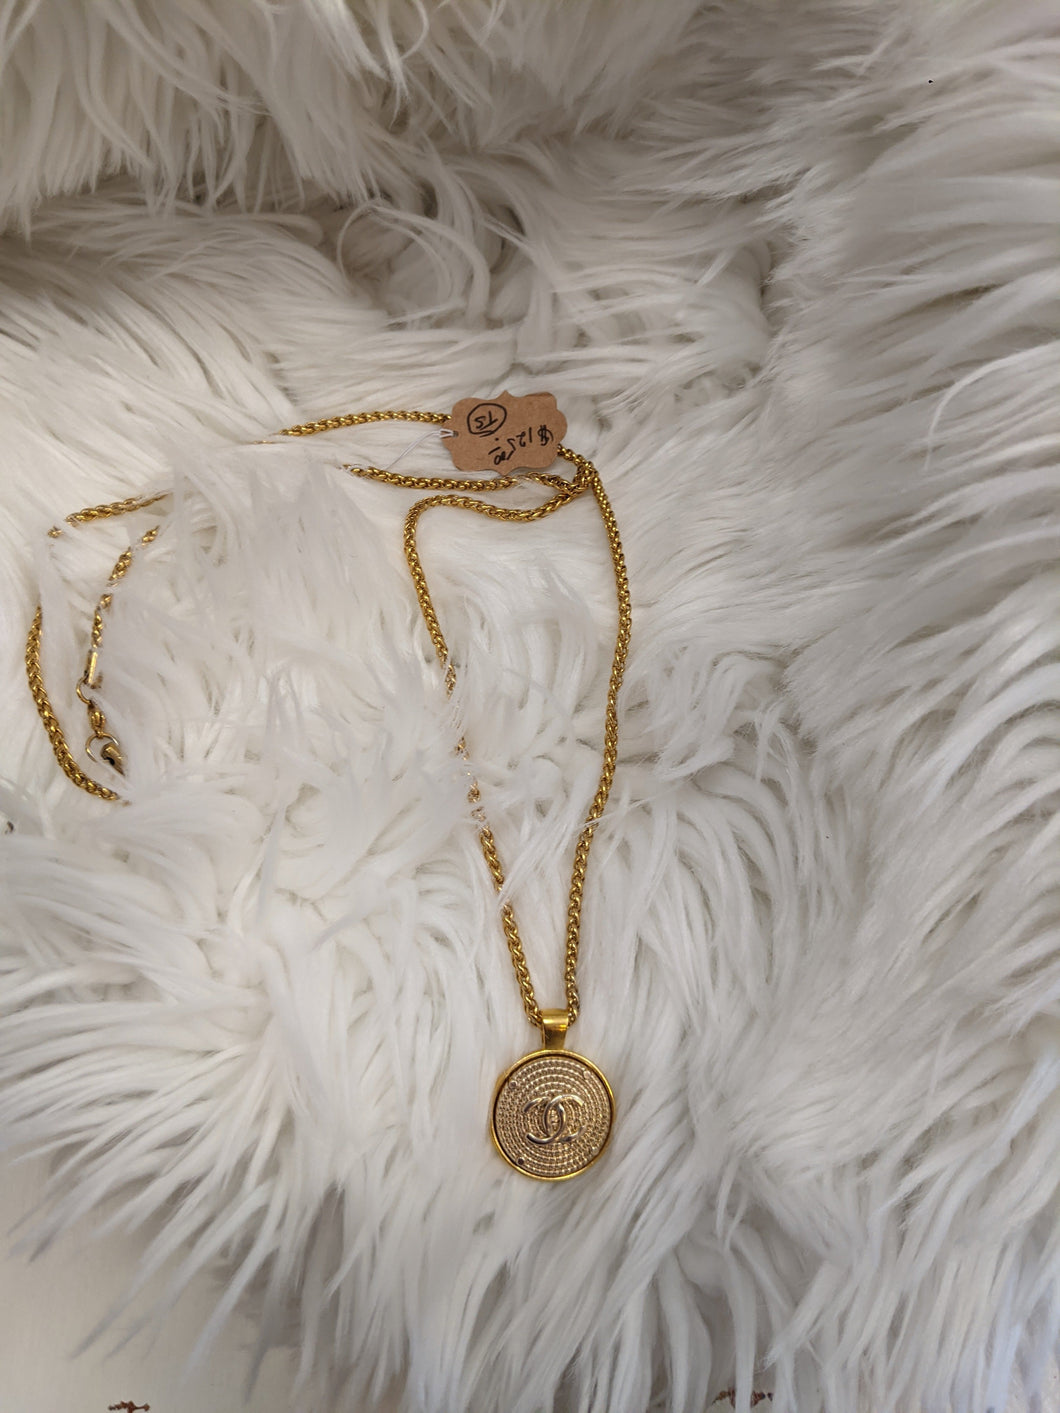 TS125 - Gold Chanel Button Necklace on 1950's Vintage Chain